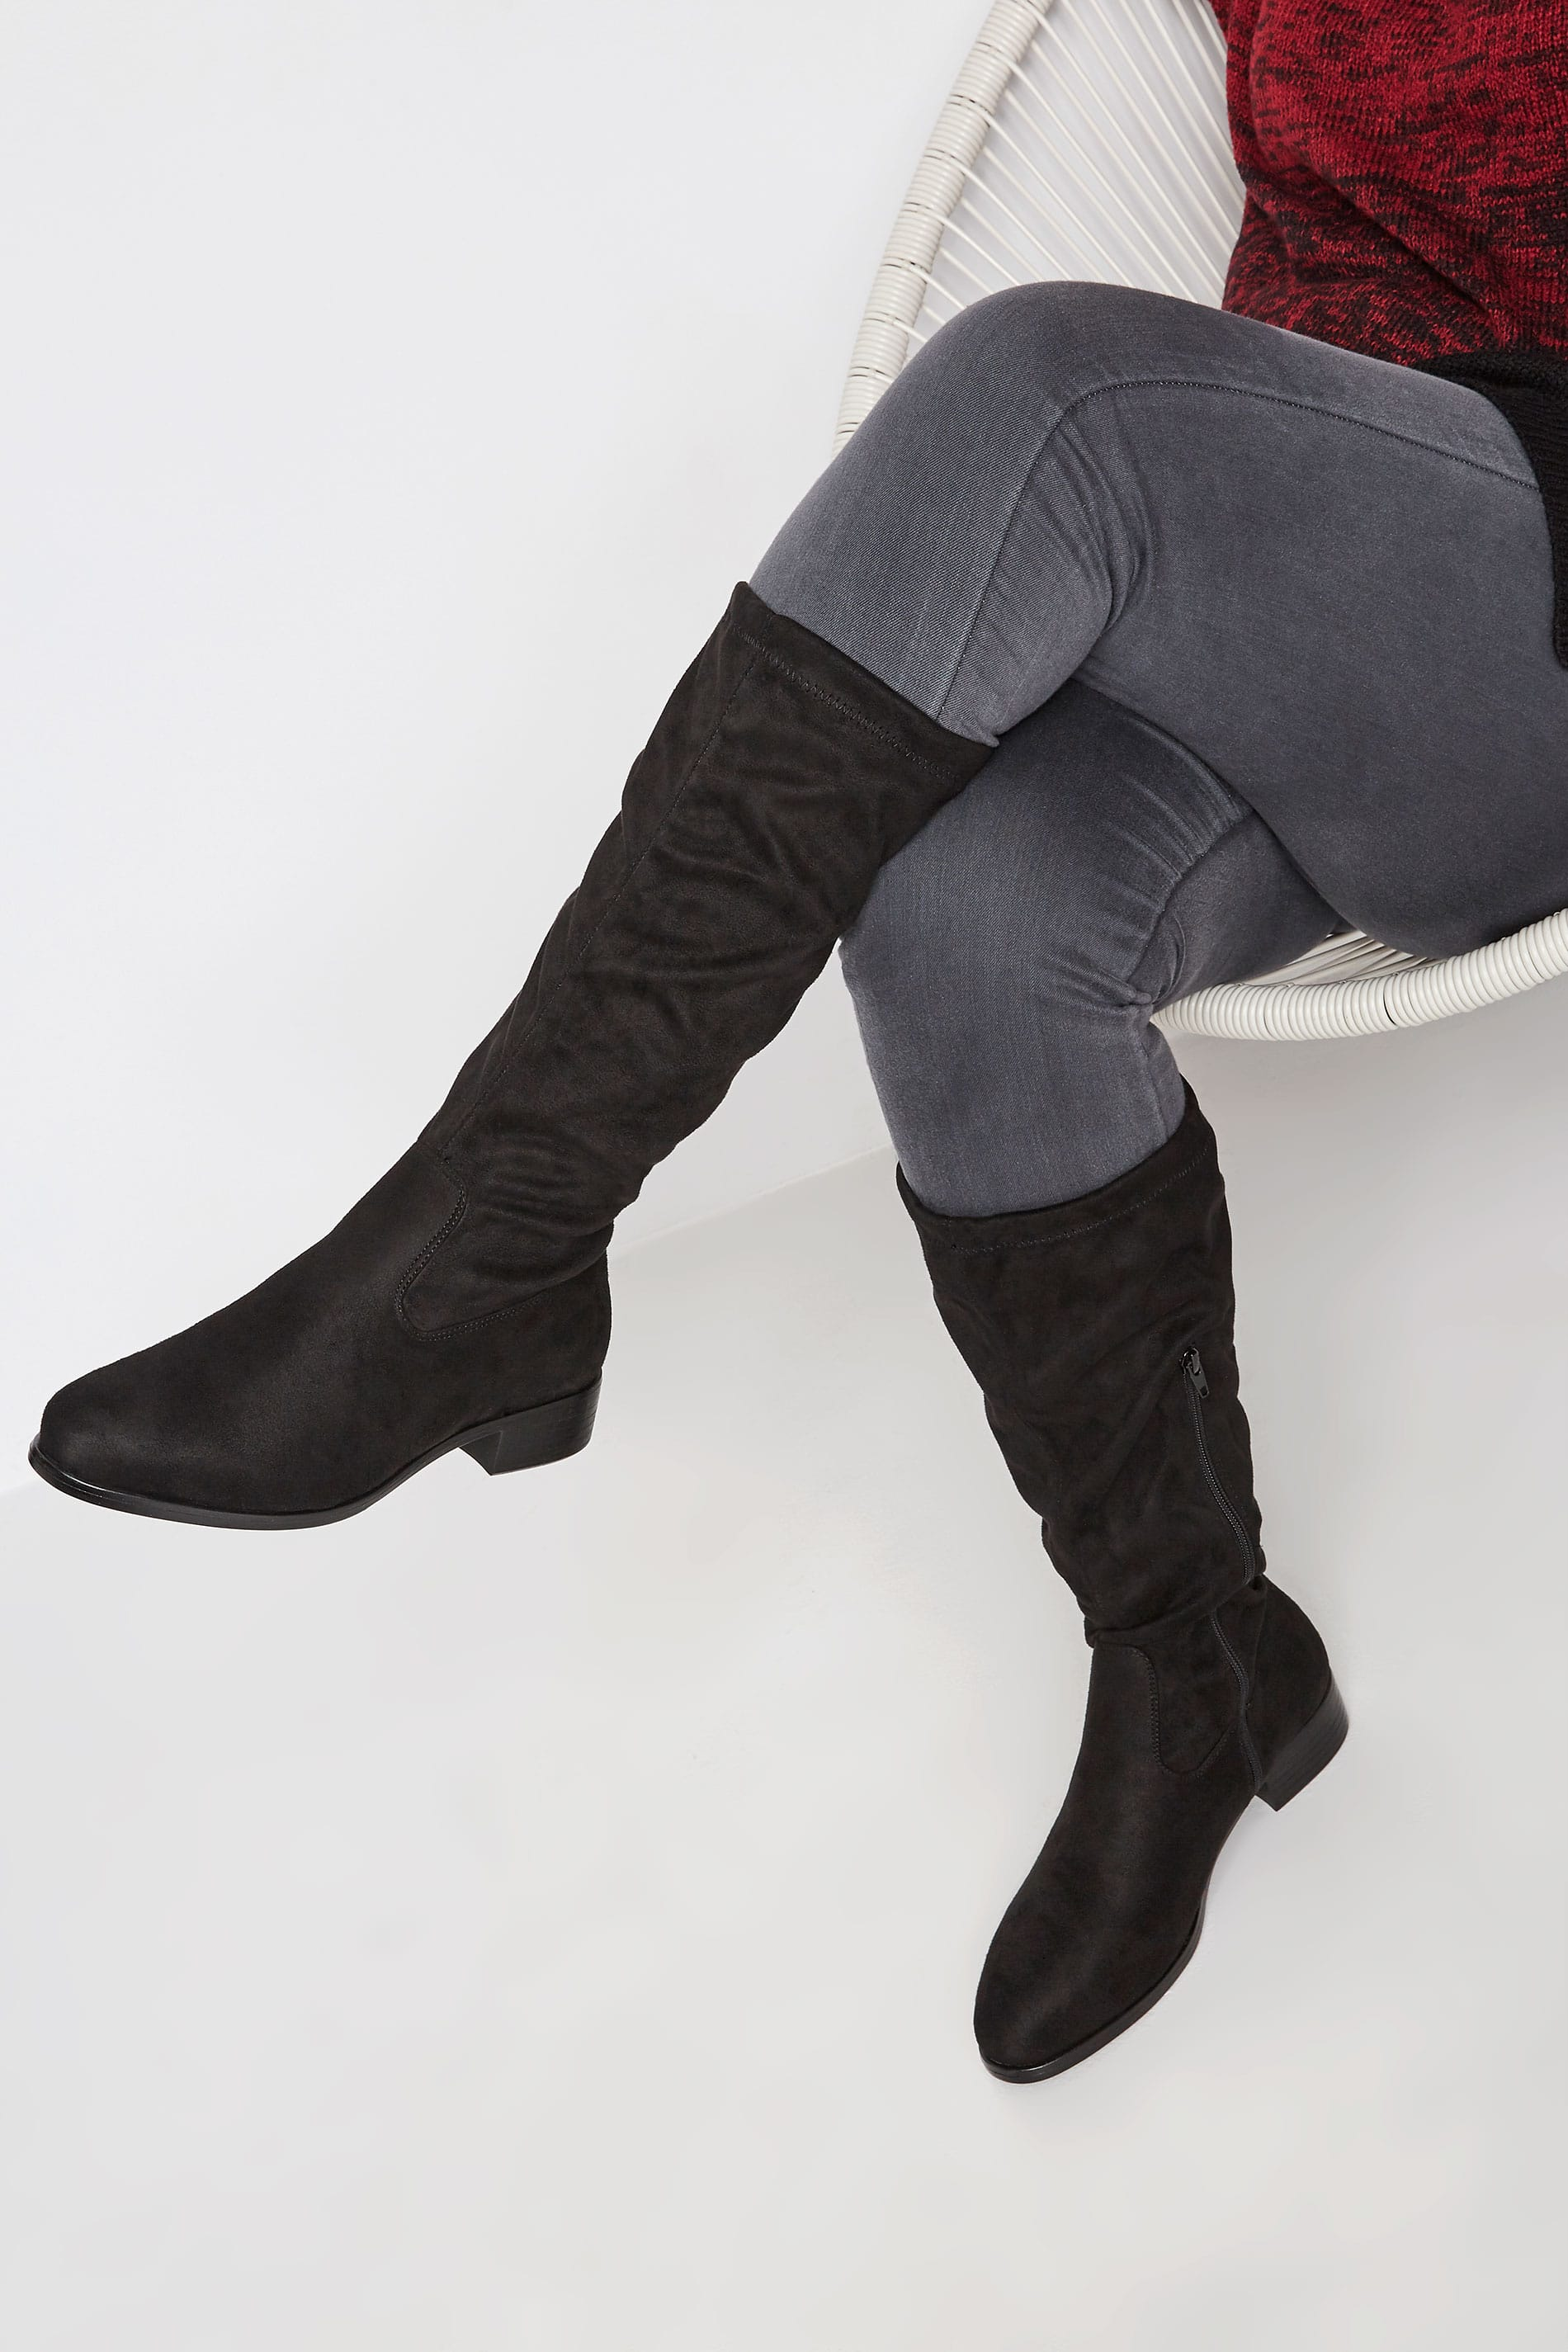 Black Stretch Knee High Boot In Extra